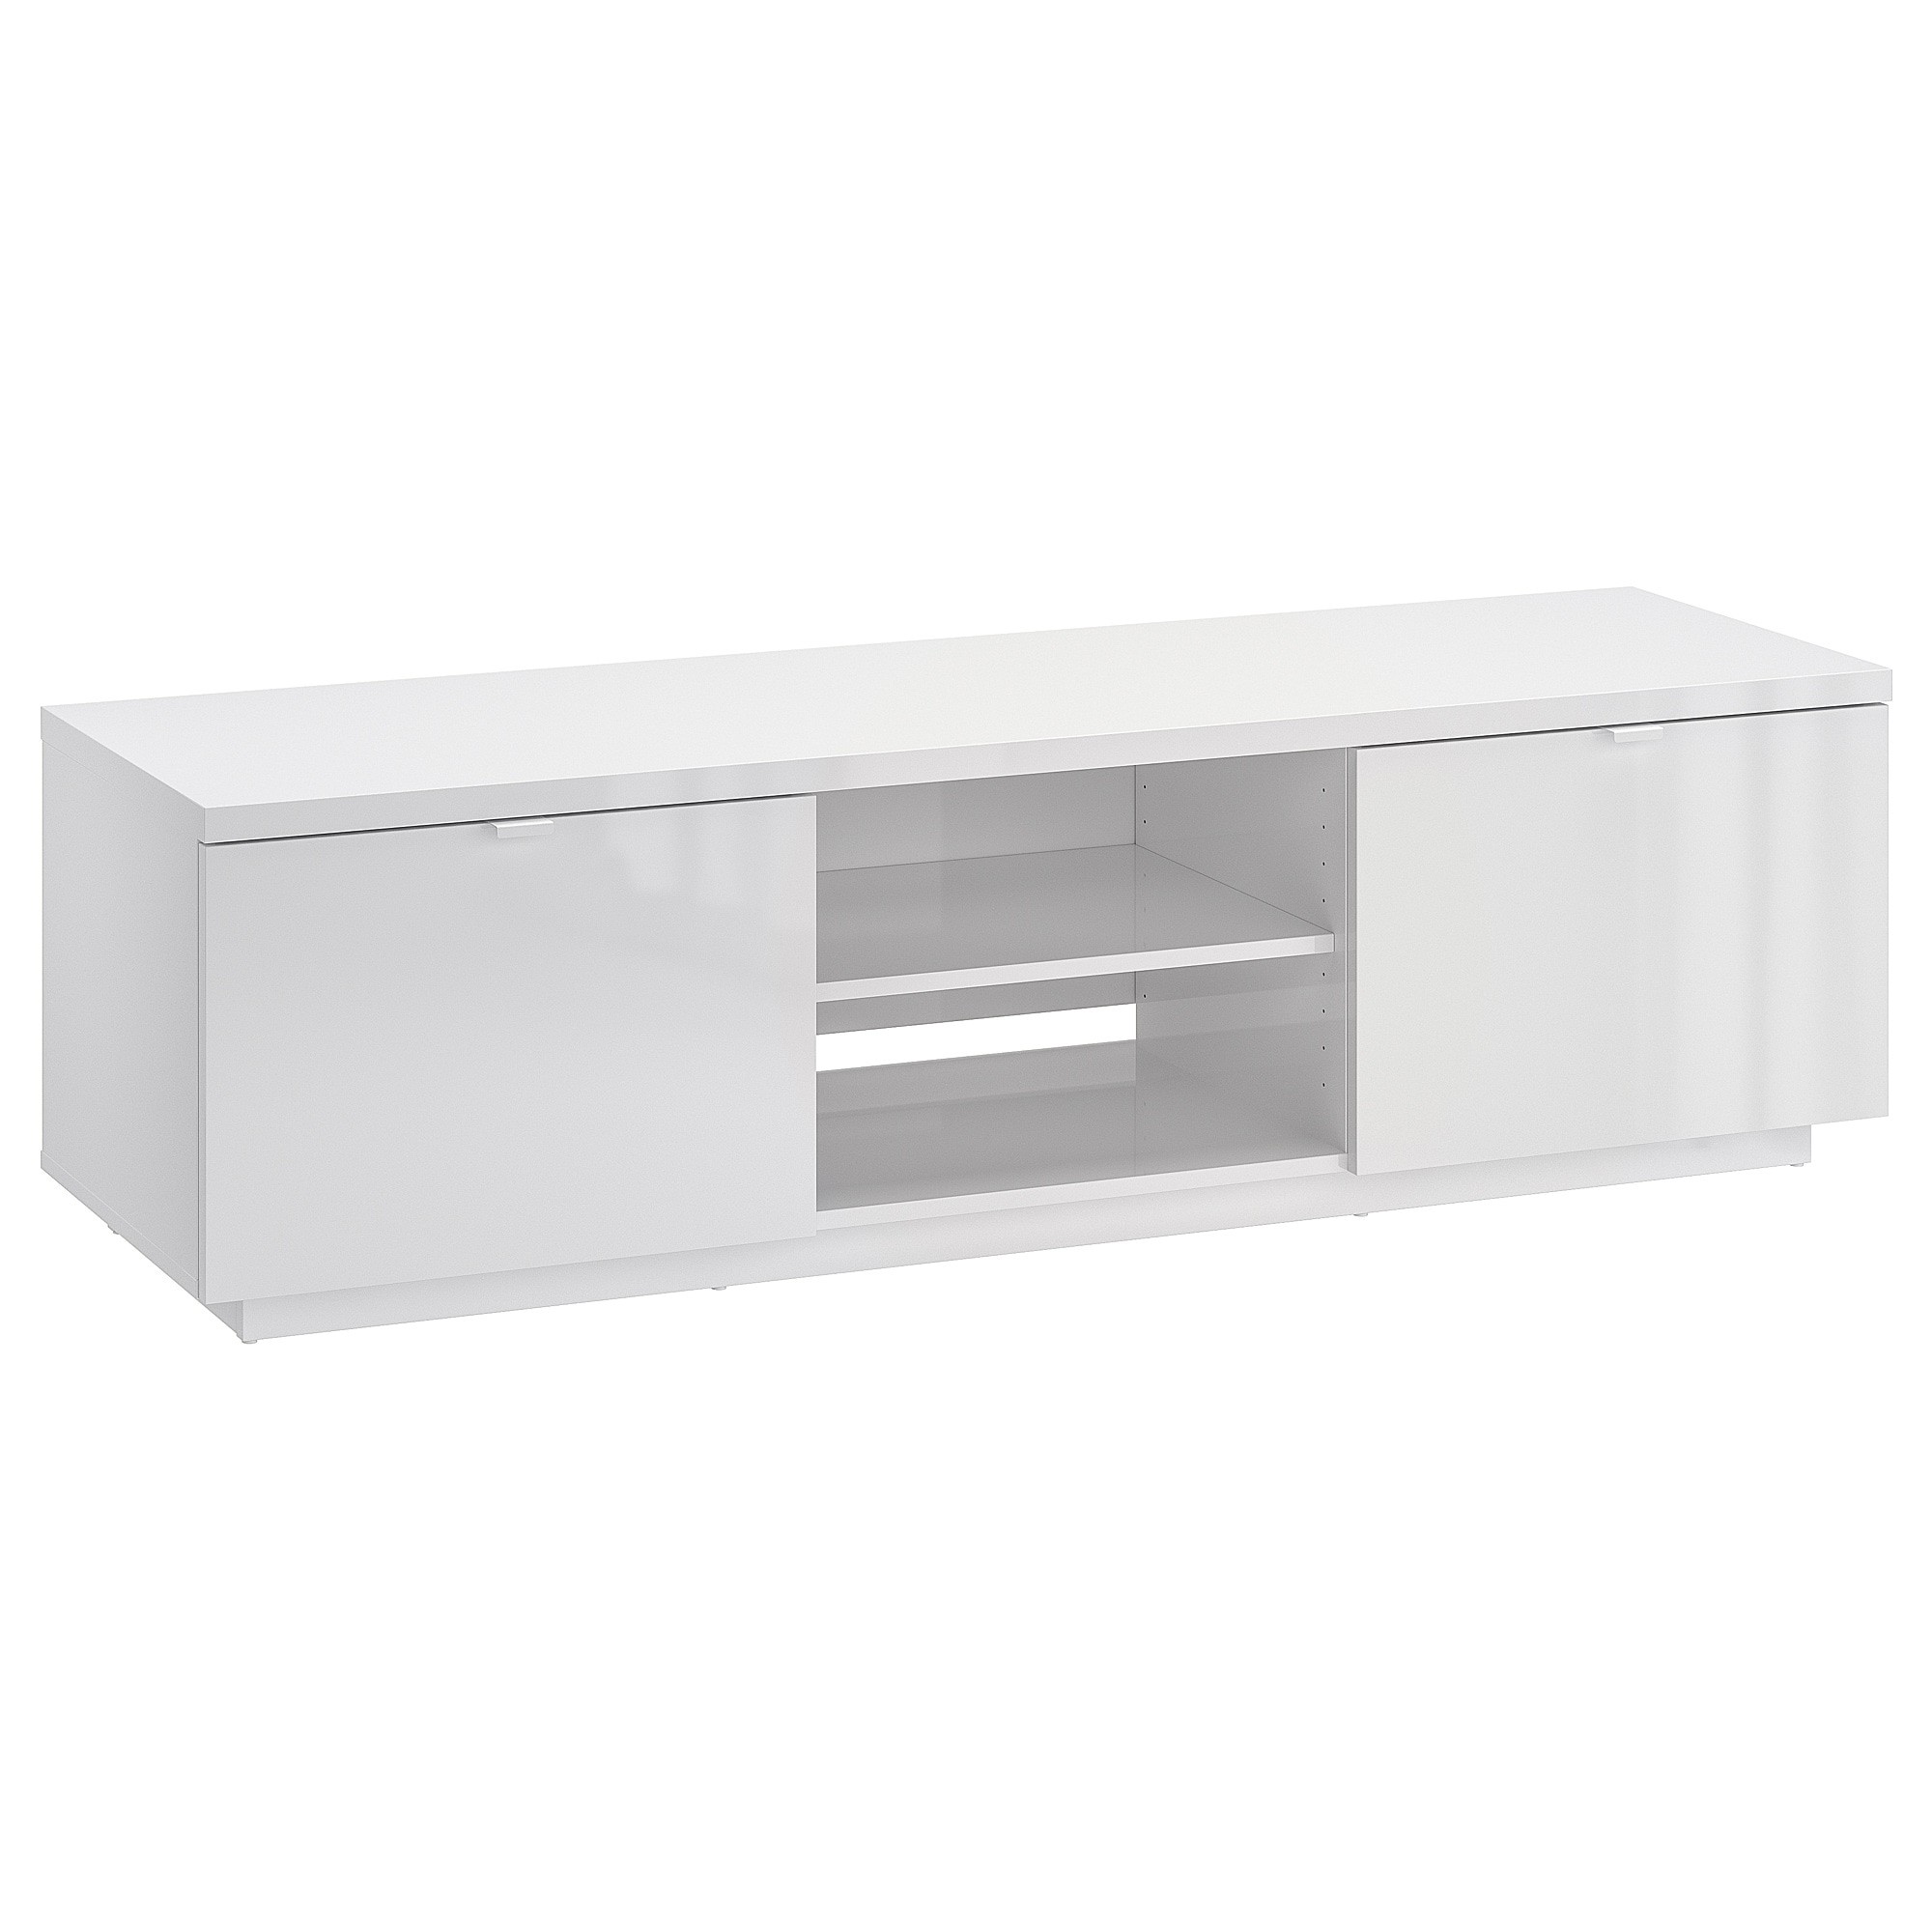 Well Known White Gloss Tv Benches Inside Byås Tv Bench High Gloss White 160 X 42 X 45 Cm – Ikea (View 16 of 20)